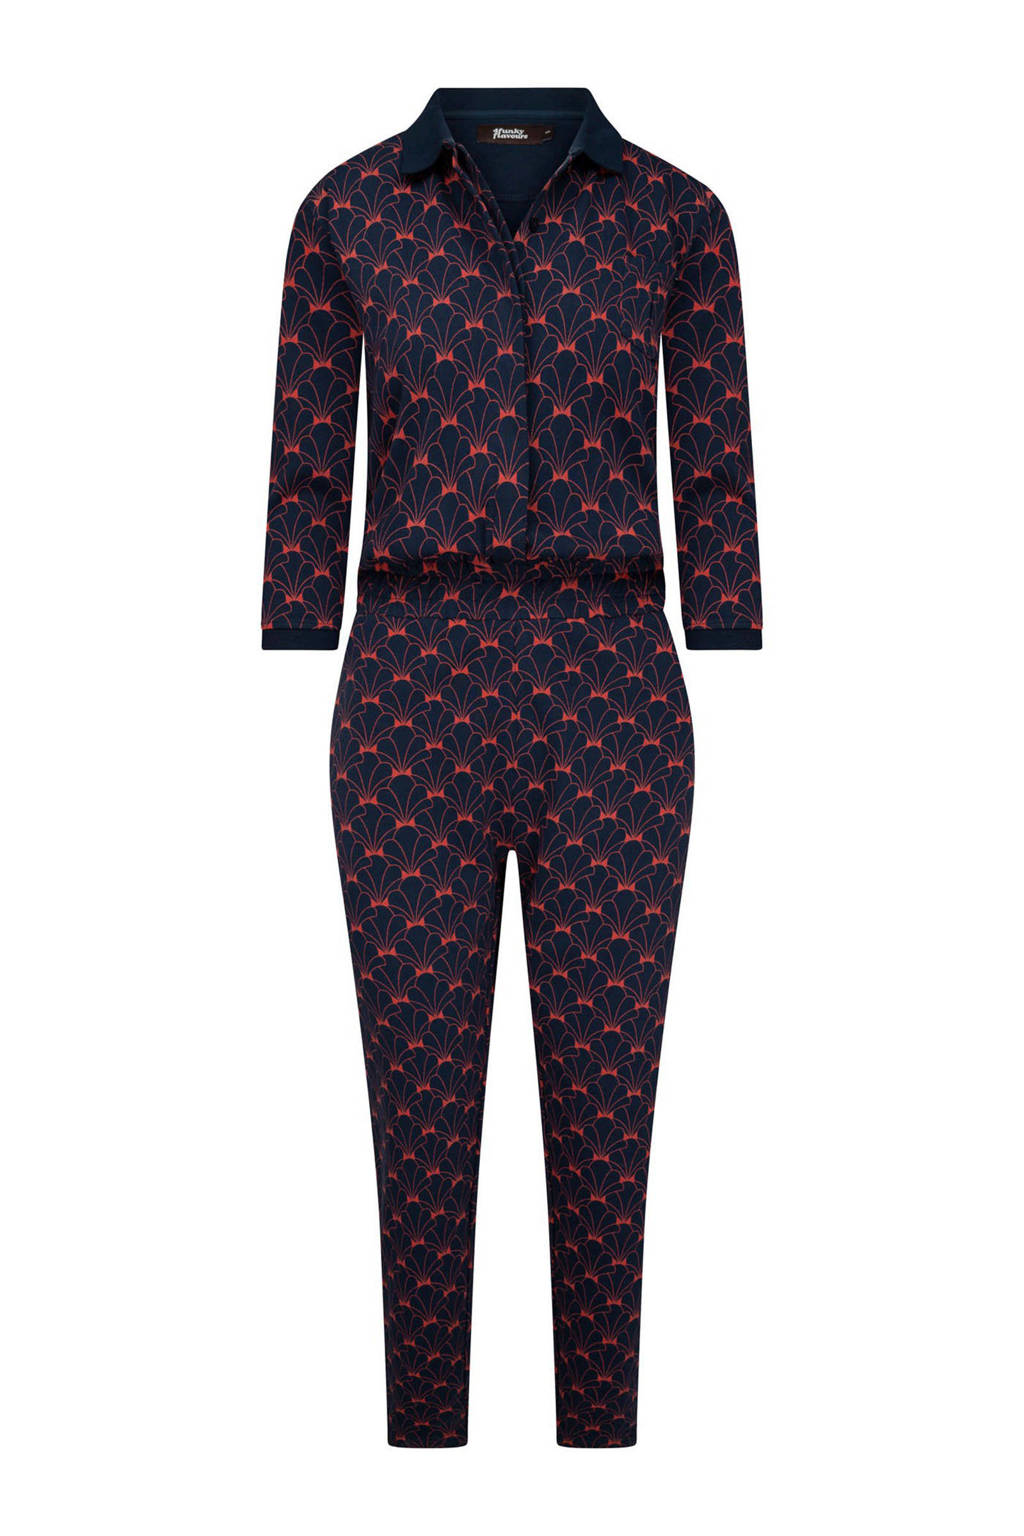 4funkyflavours jumpsuit Tonight's The Night met all over print donkerblauw/rood, Donkerblauw/rood